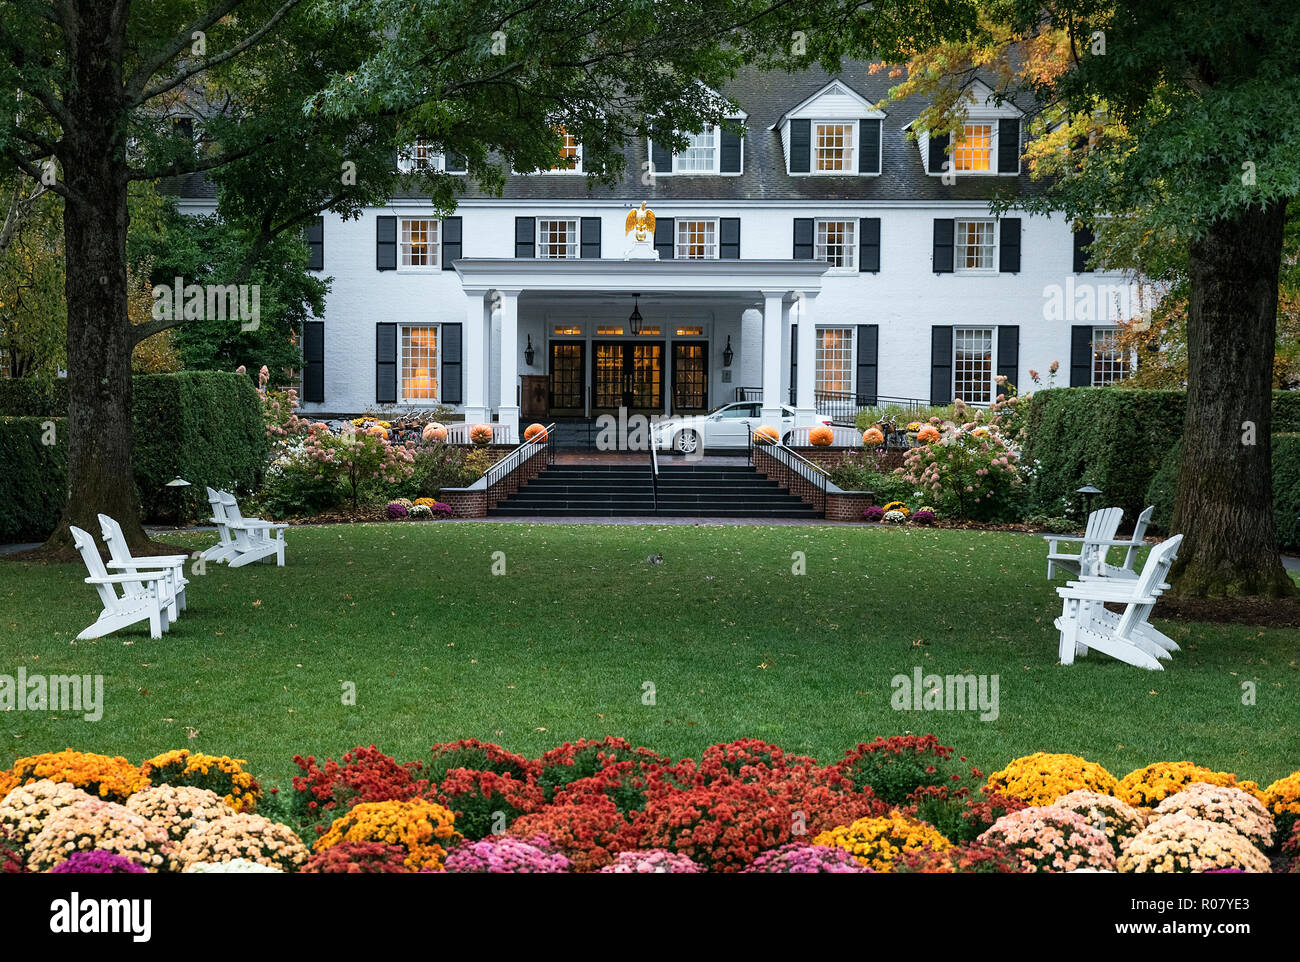 Woodstock Inn and Resort, Woodstock, Vermont, EE.UU. Foto de stock